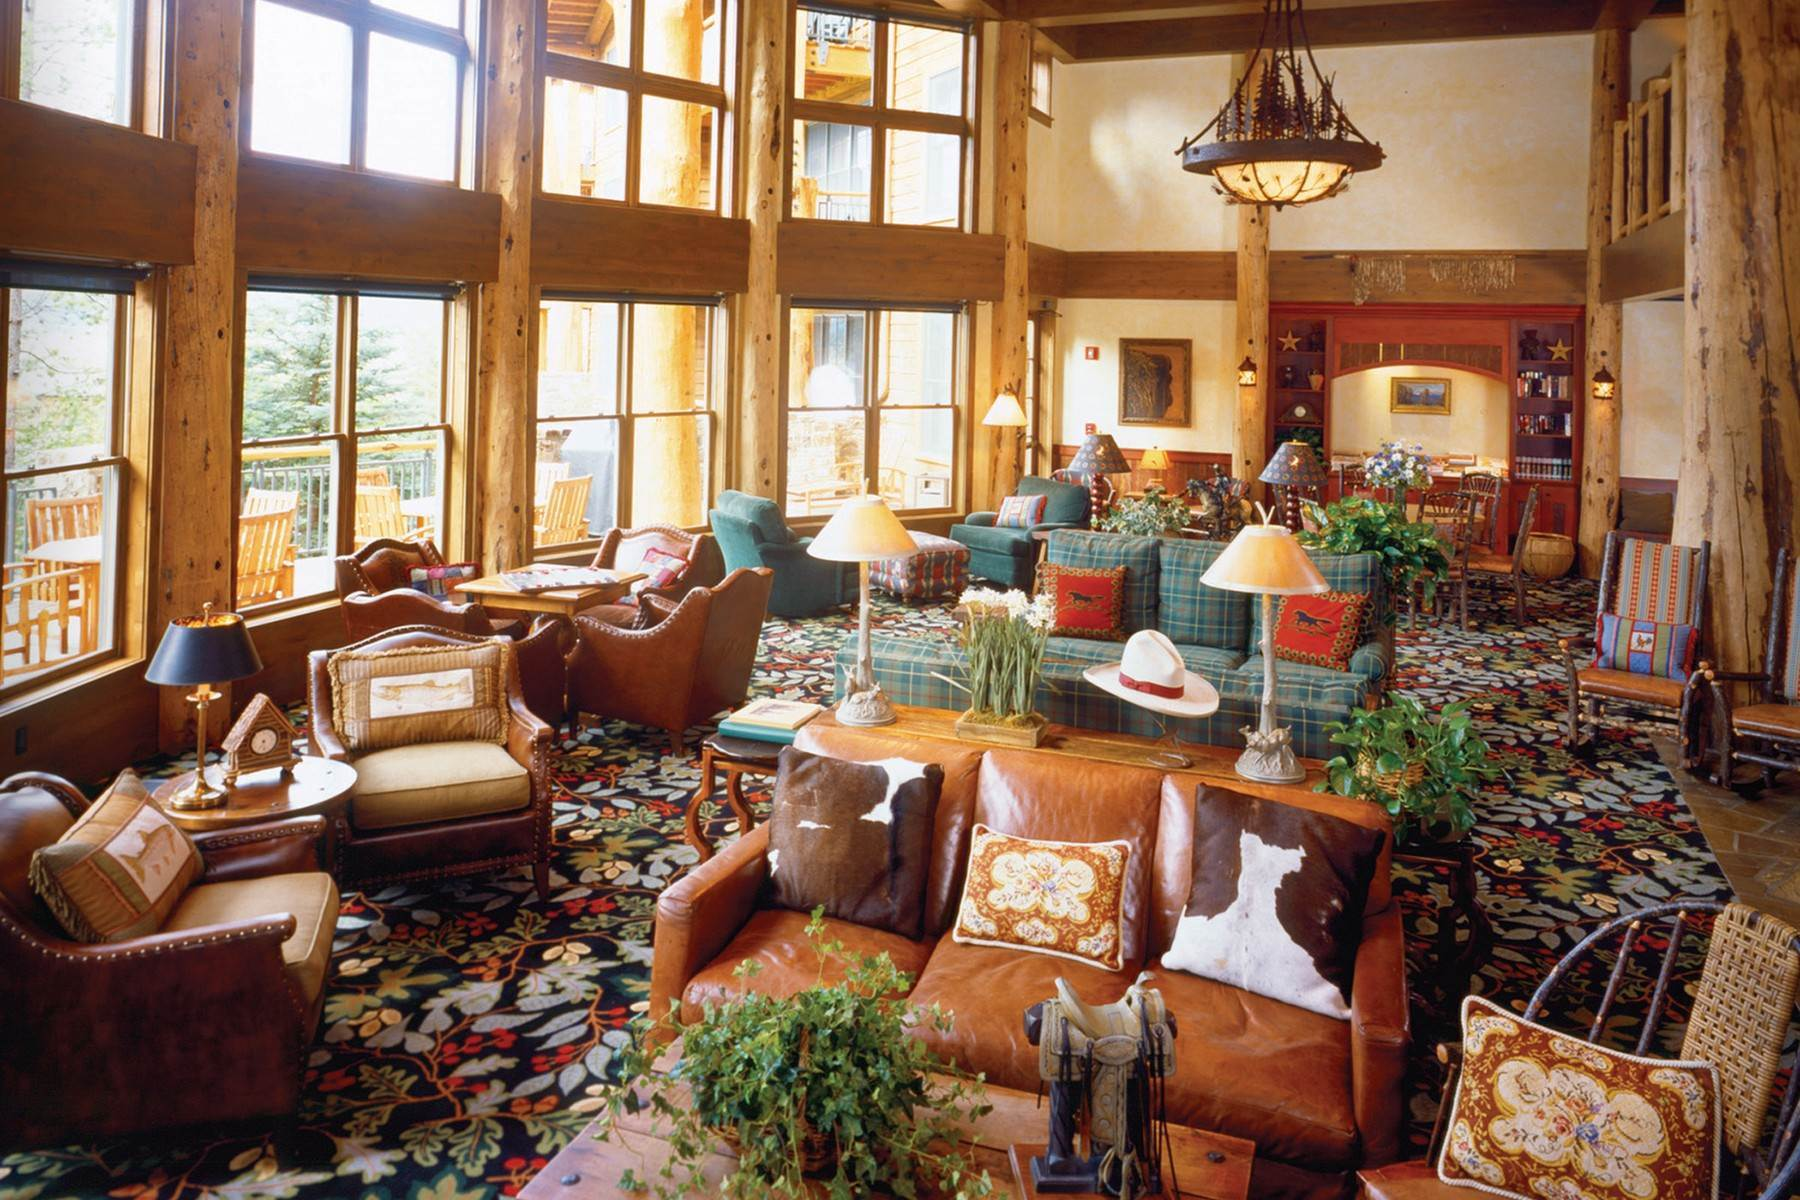 2. fractional ownership prop for Sale at Teton Club - Two Prime Summer Weeks 3340 W Cody Ln, #105 Teton Village, Wyoming 83025 United States